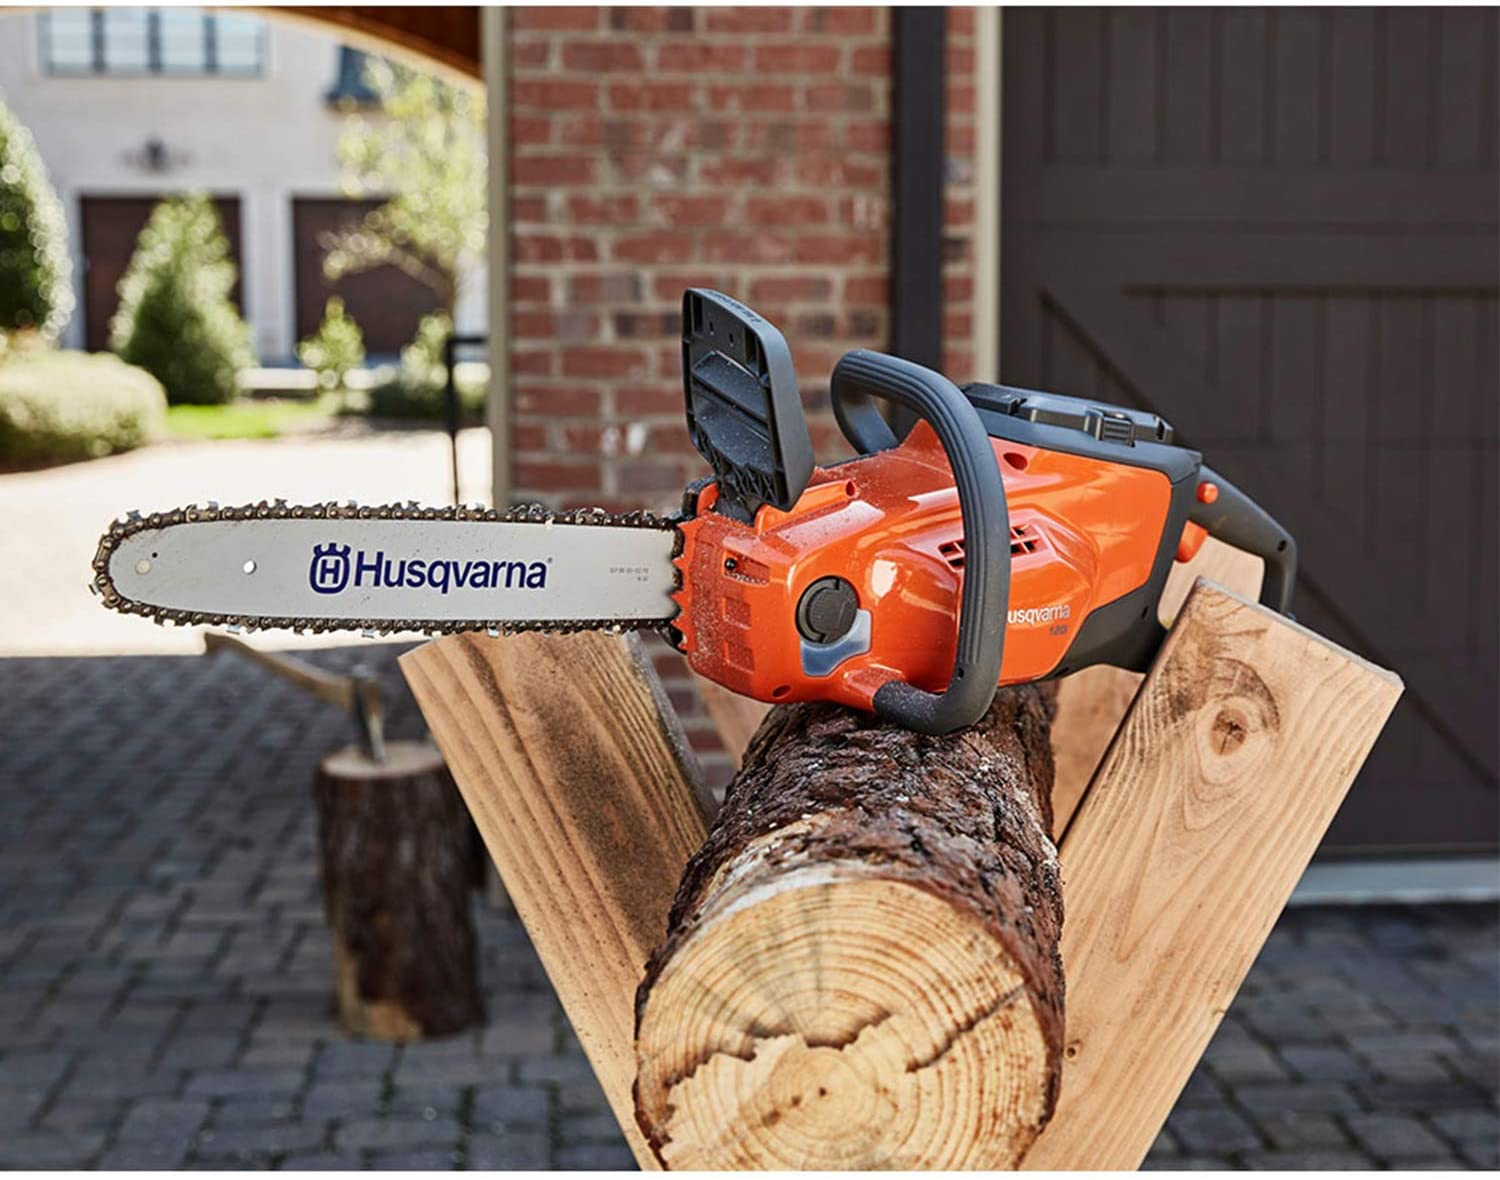 Best Cordless Chainsaw in 2020: Reviews & Buying Guide 3